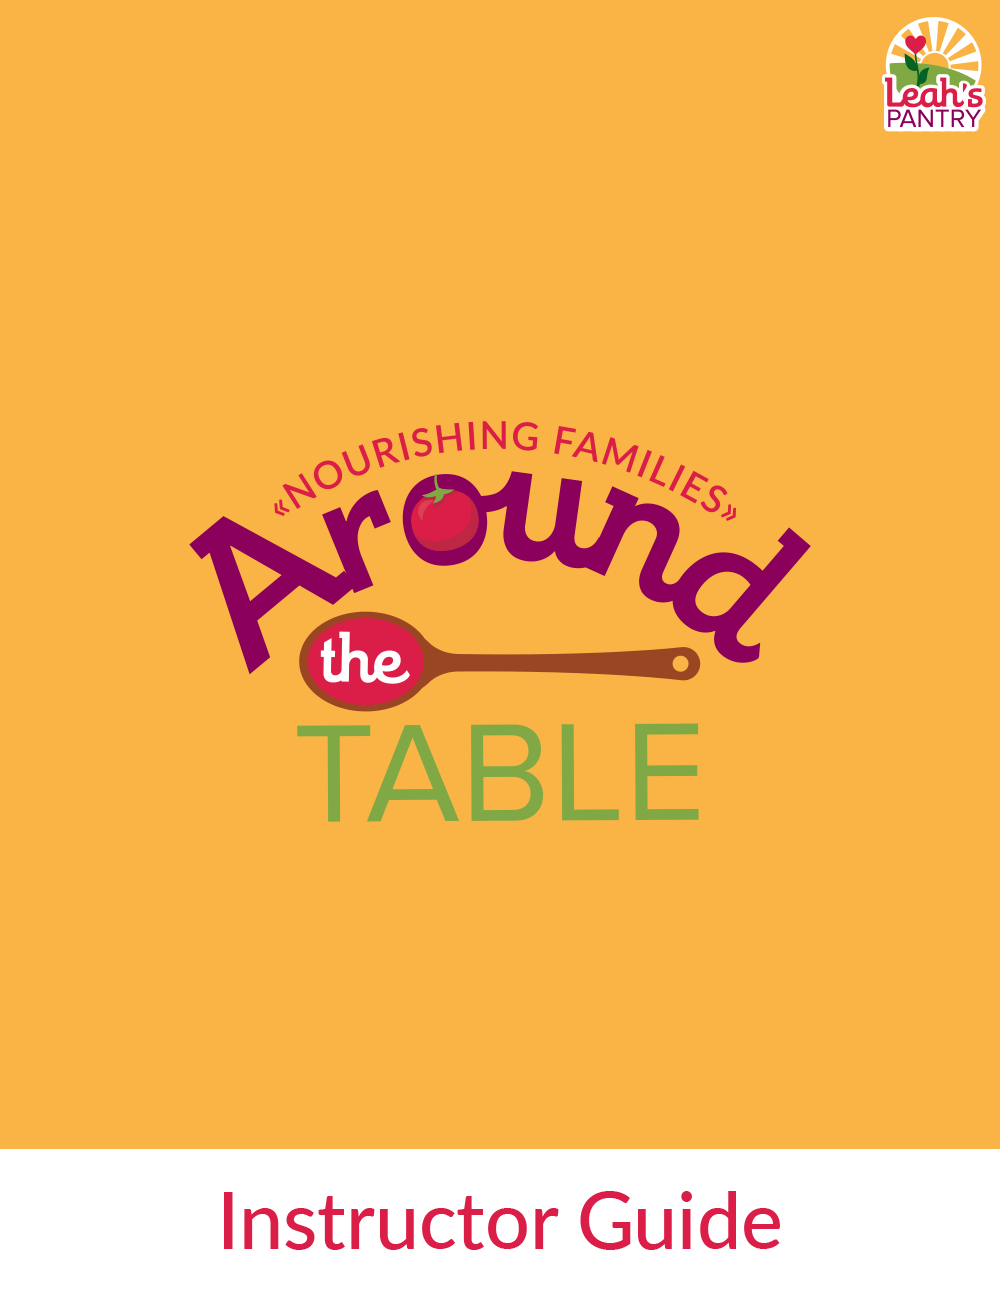 Around the Table: Nourishing Families (Instructor Guide)